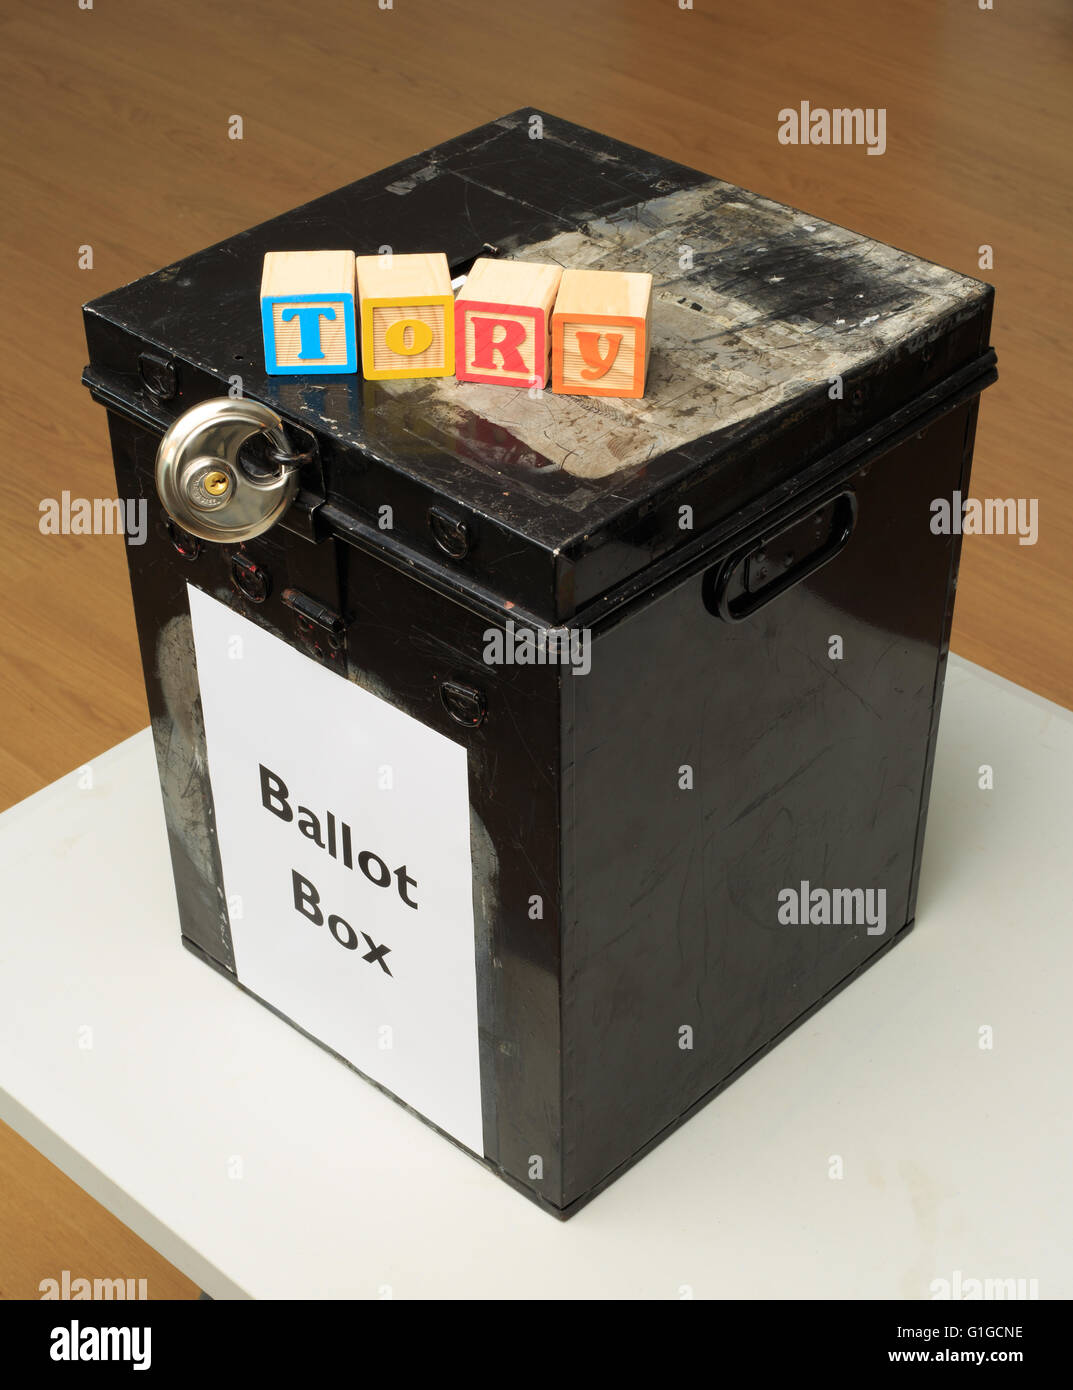 UK ballot box and childs' ABC blocks stating 'Tory' in reference to British politics. - Stock Image